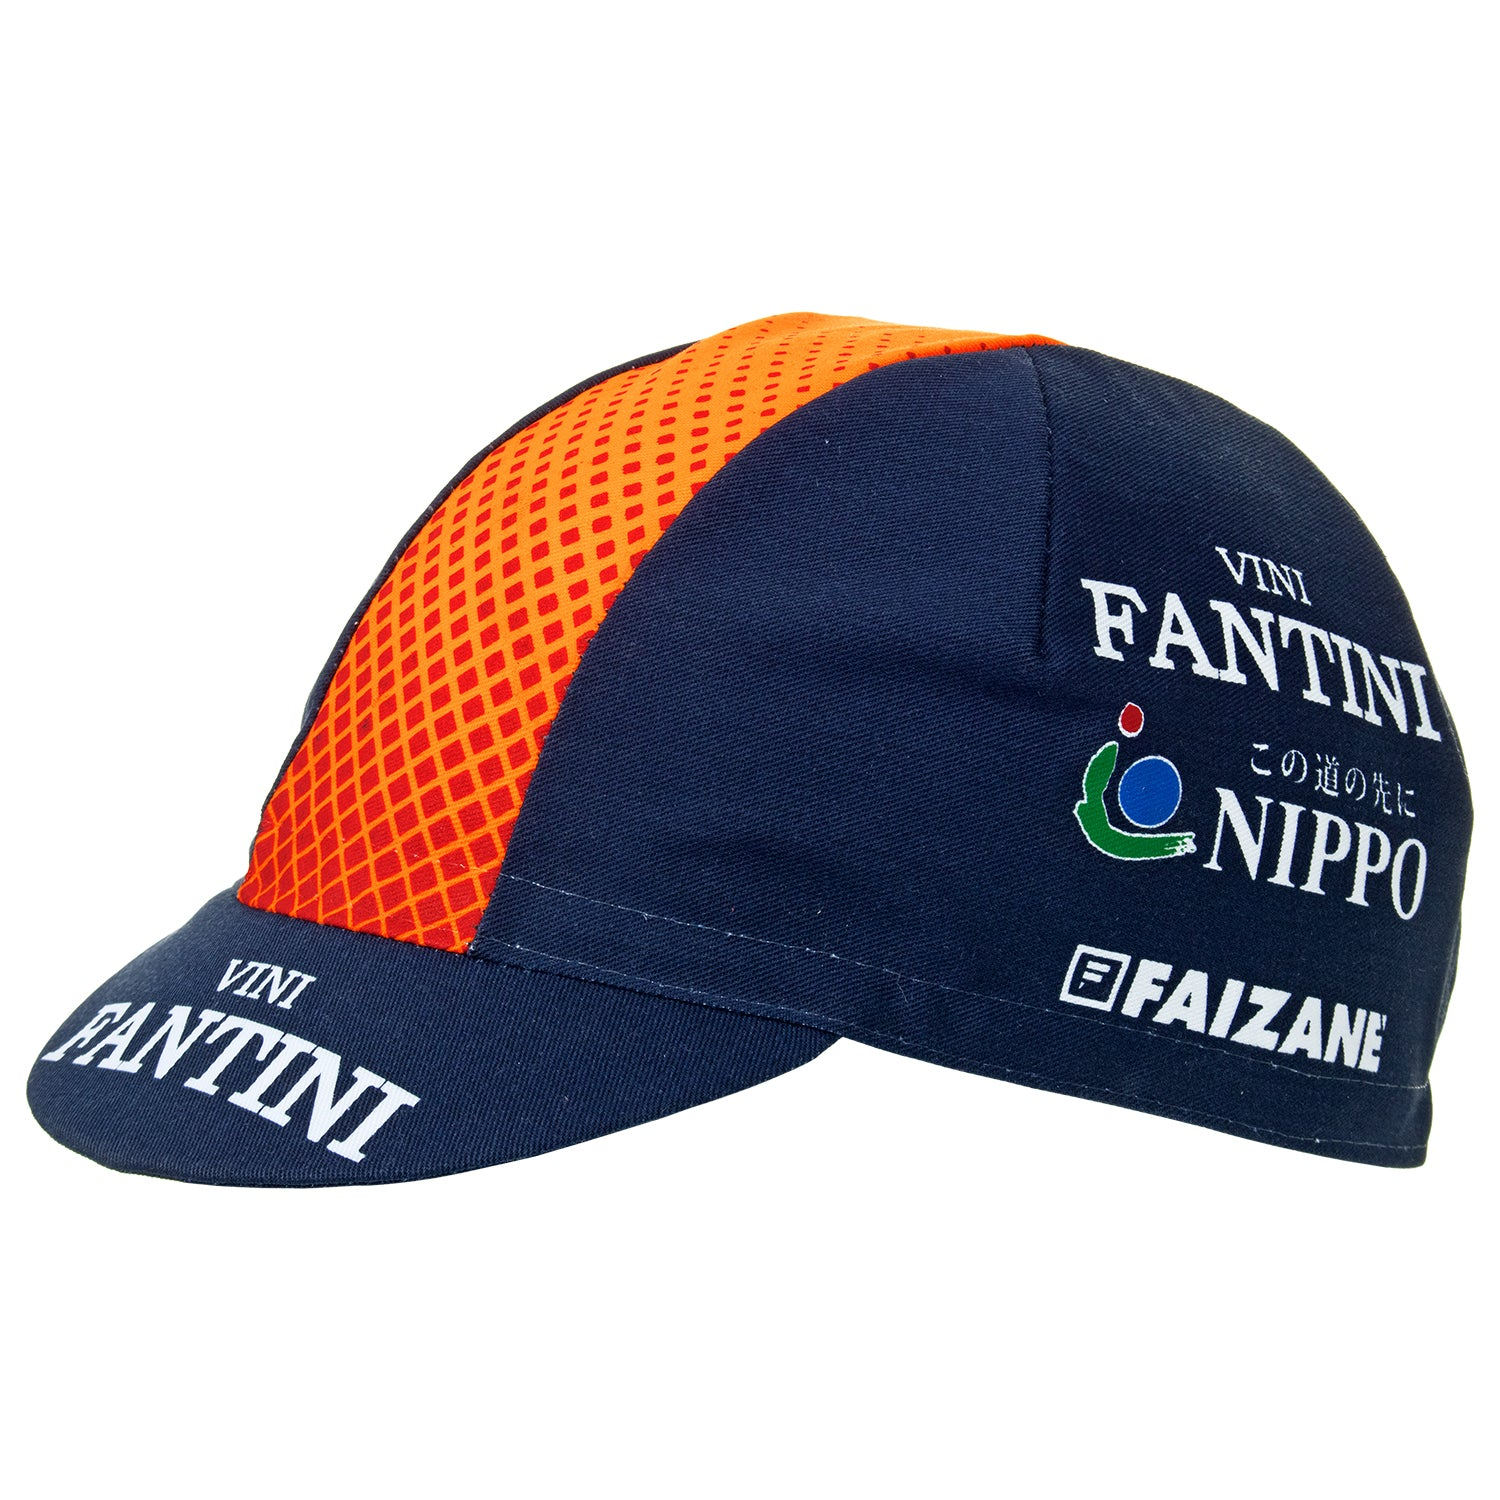 Nippo Vini Fantini Faizanè 2019 Team Cotton Cycling Cap